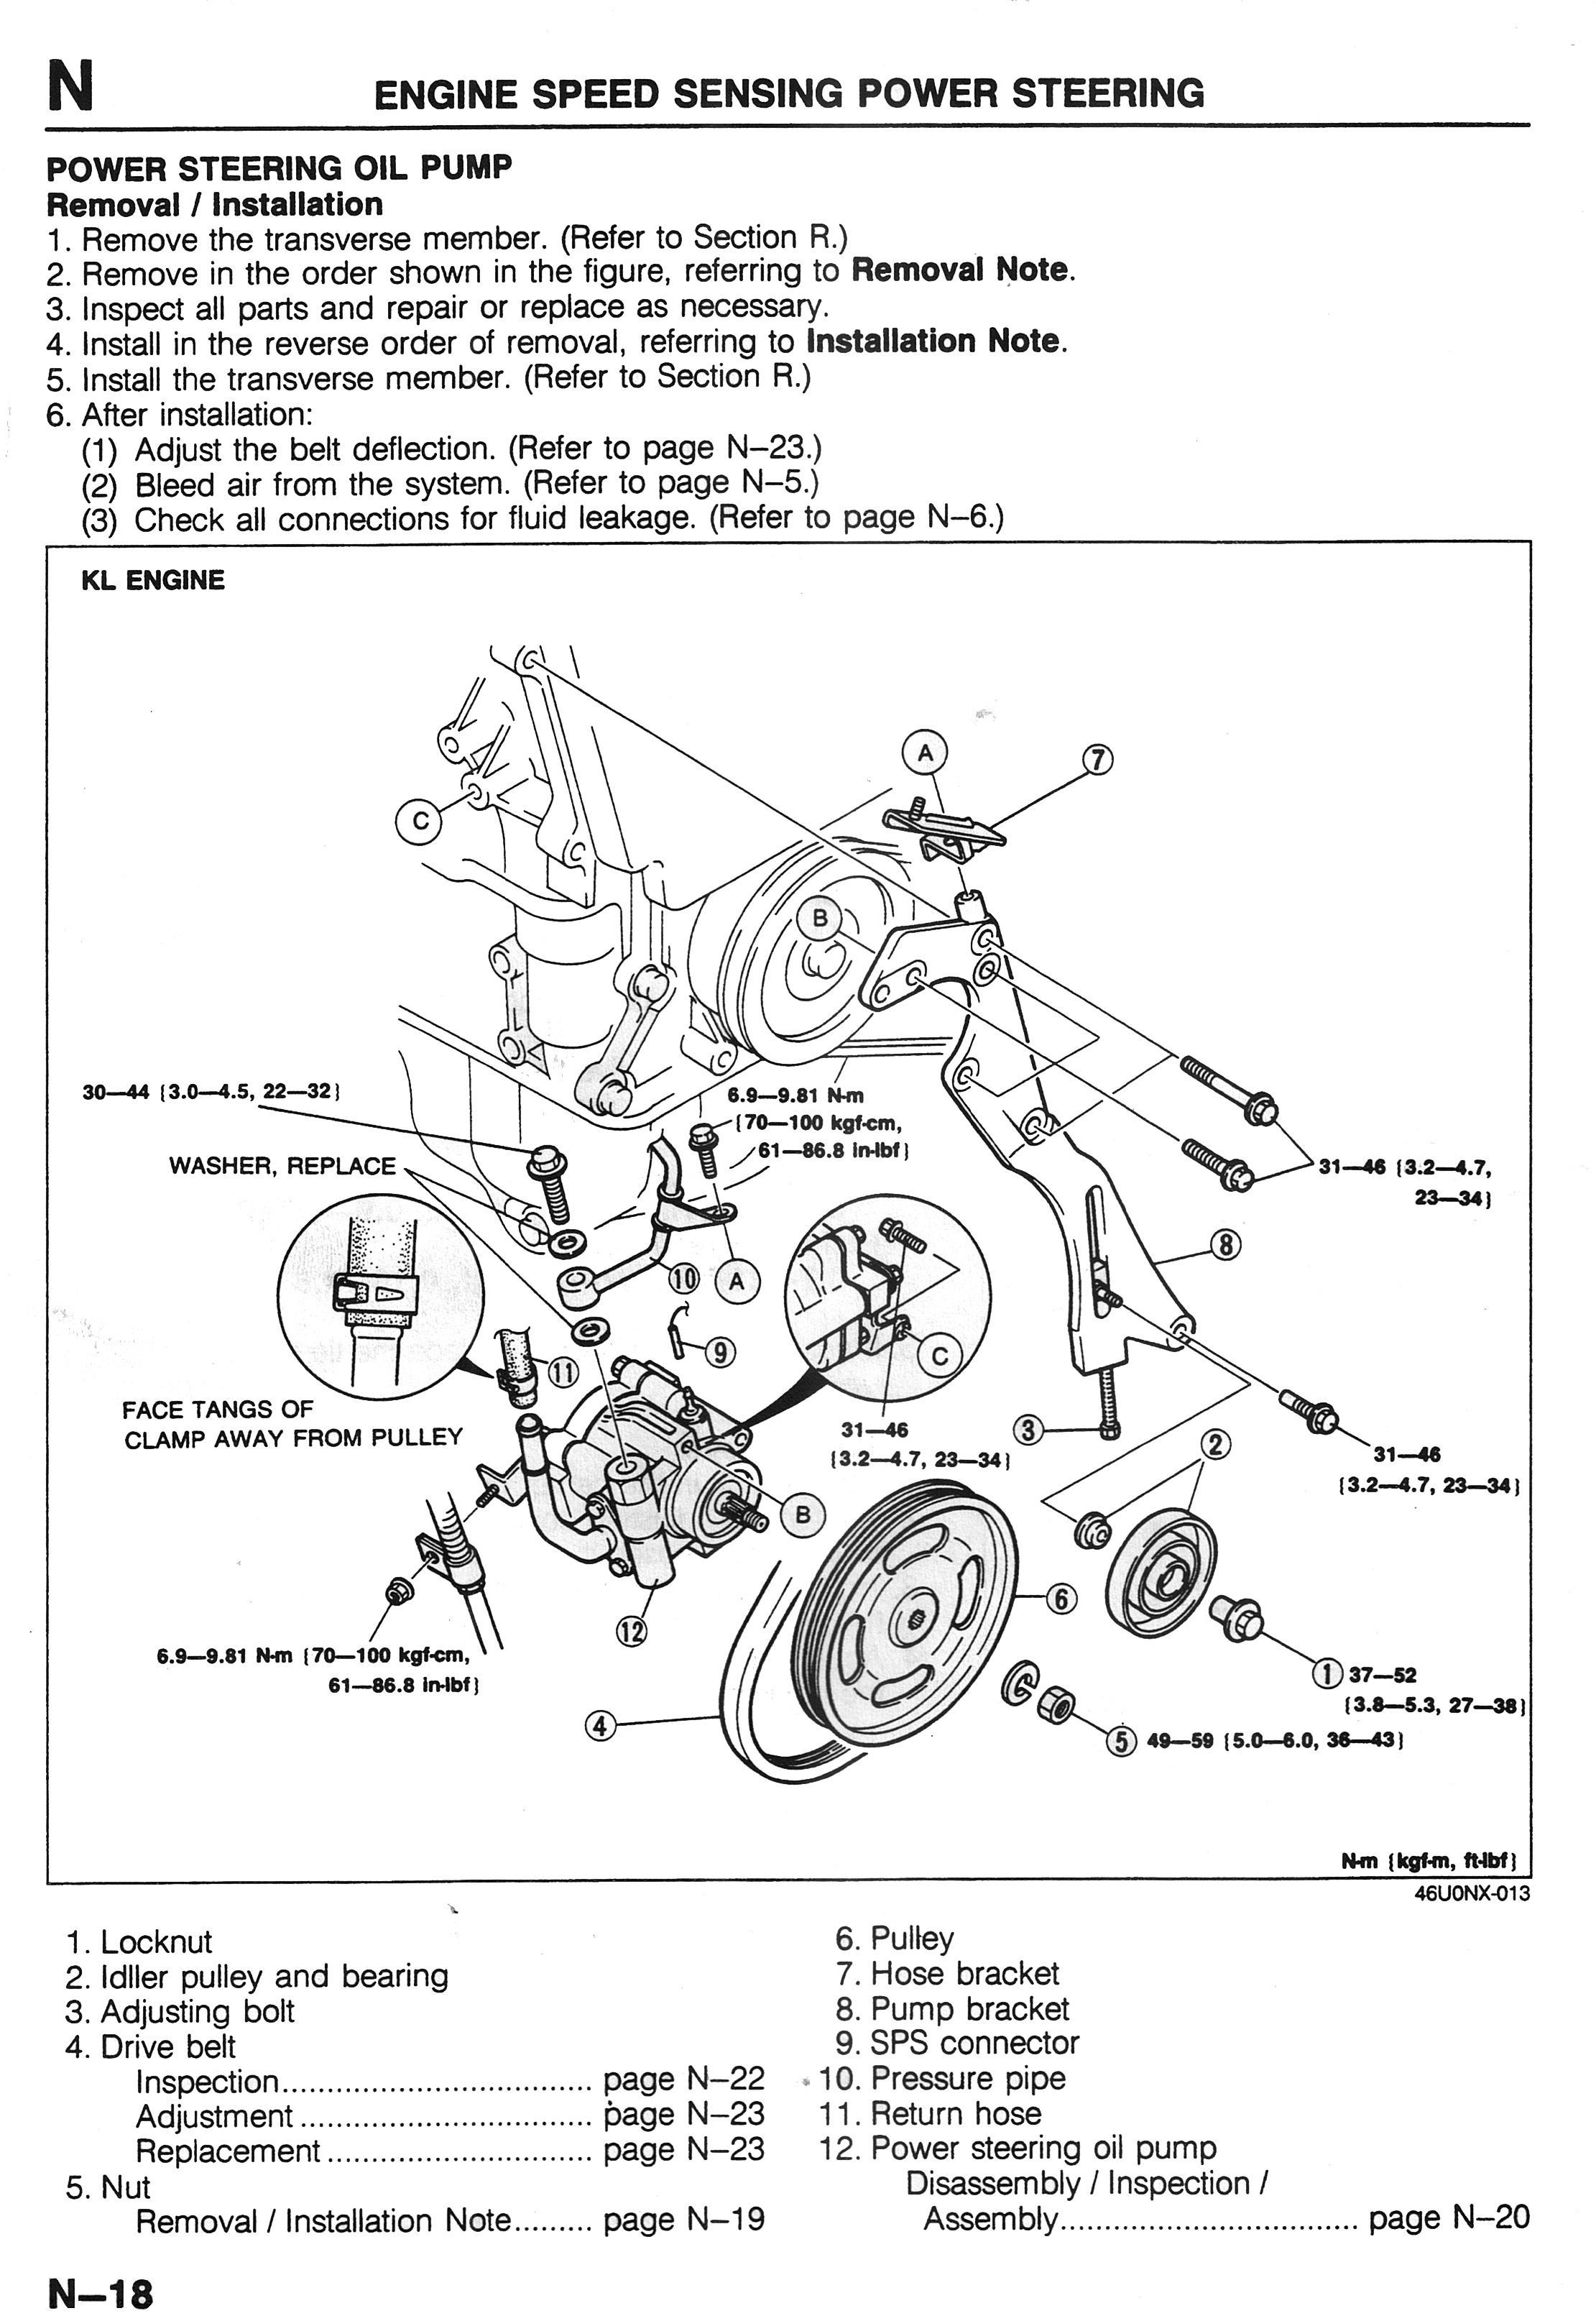 Mazda 626 Steering Diagram. Mazda. Auto Parts Catalog And